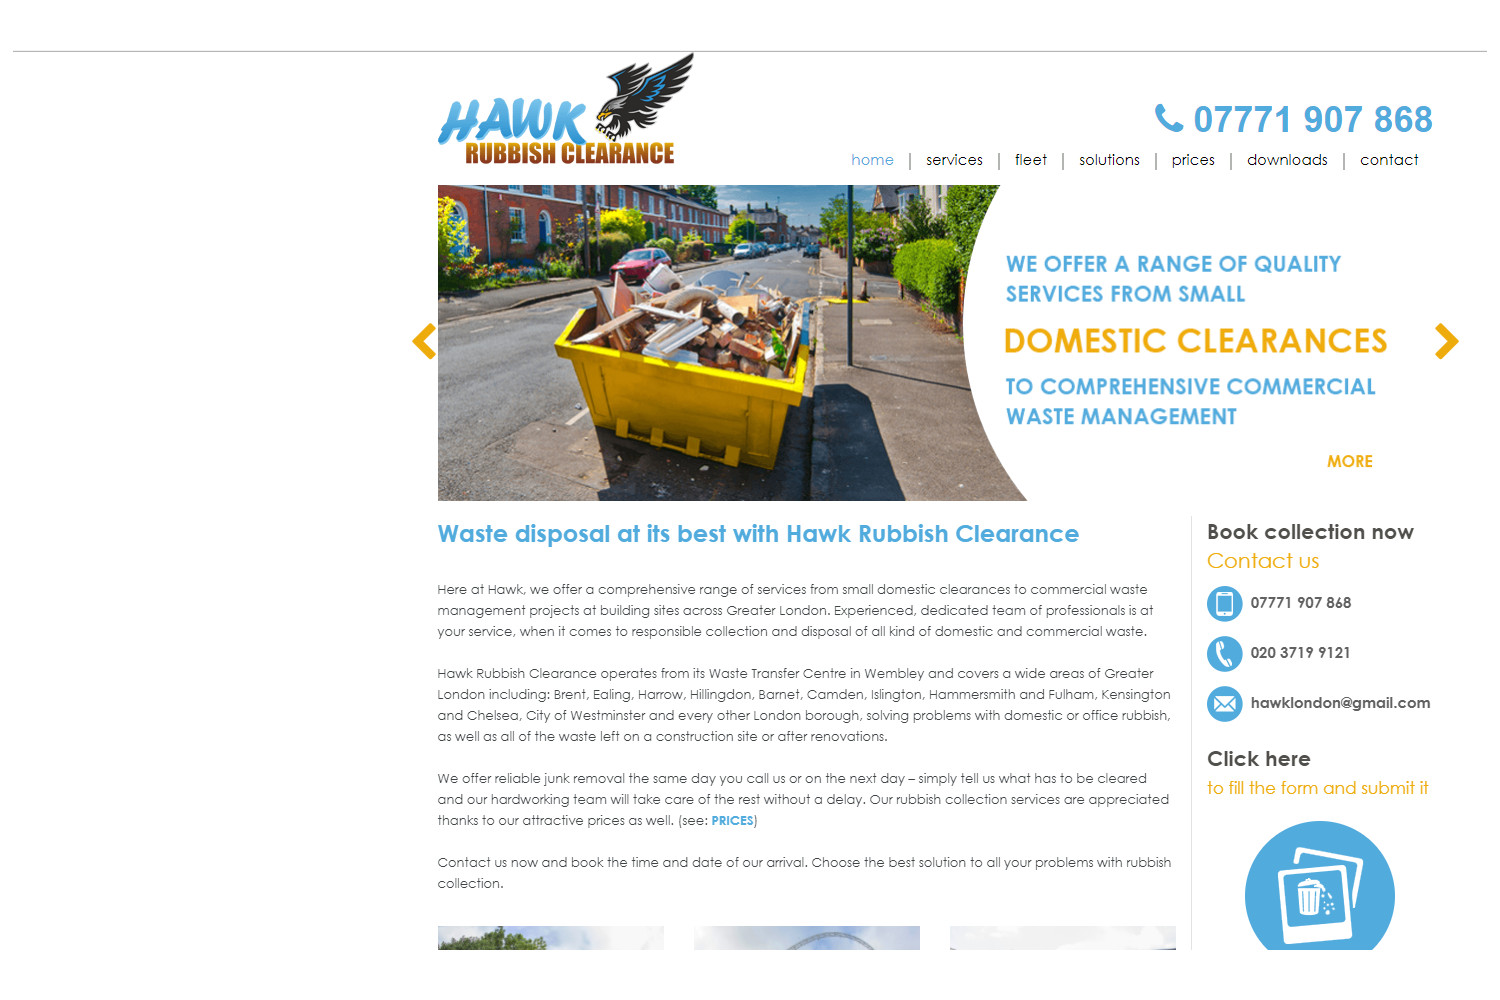 Hawk Rubbish Clearance - Website